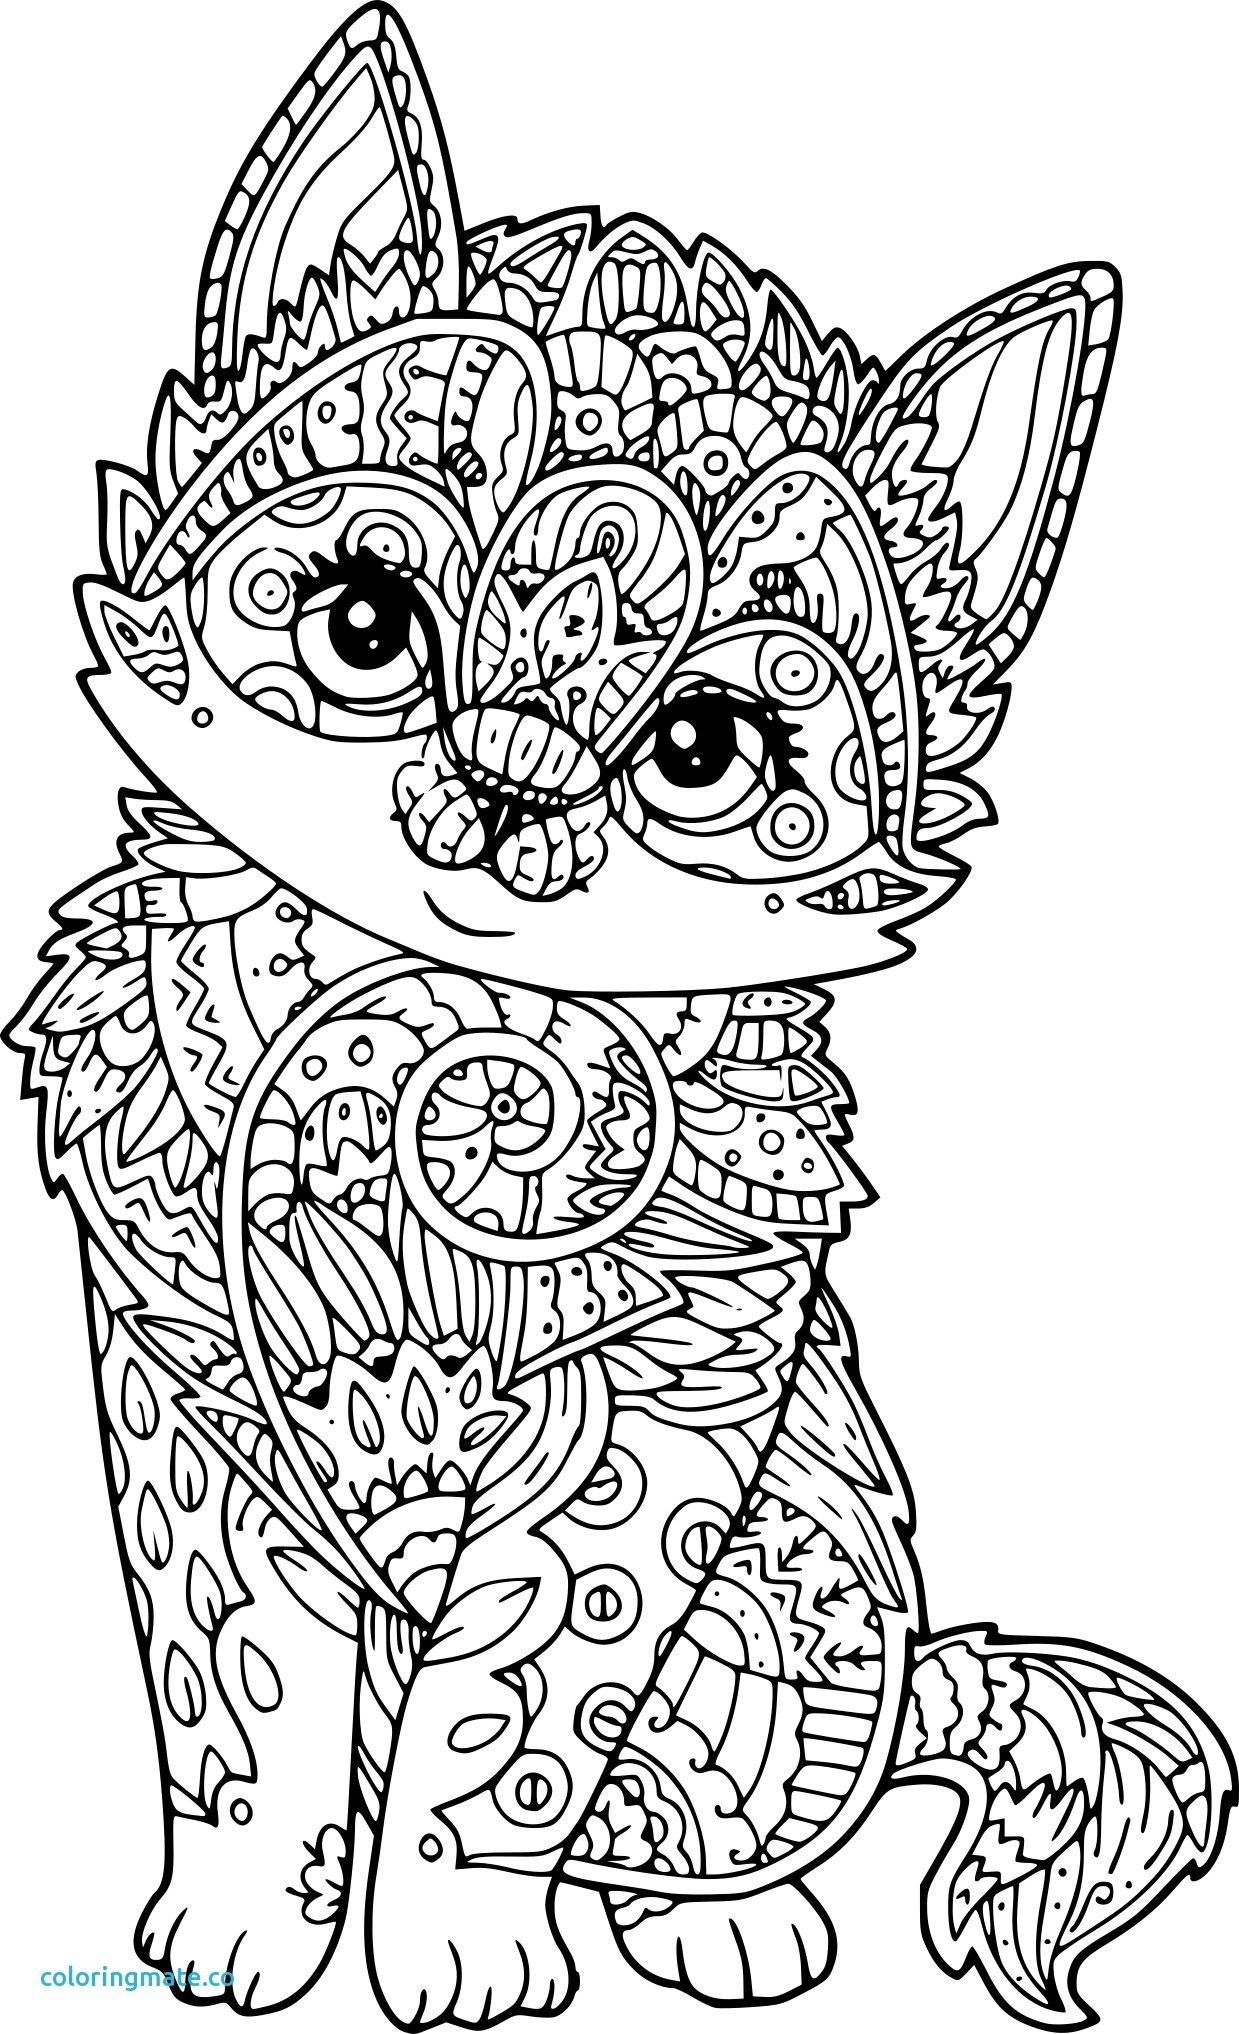 Coloriage Mandala Chat Papillon Fresh Coloriage Chat concernant Coloriage Mandala Adulte